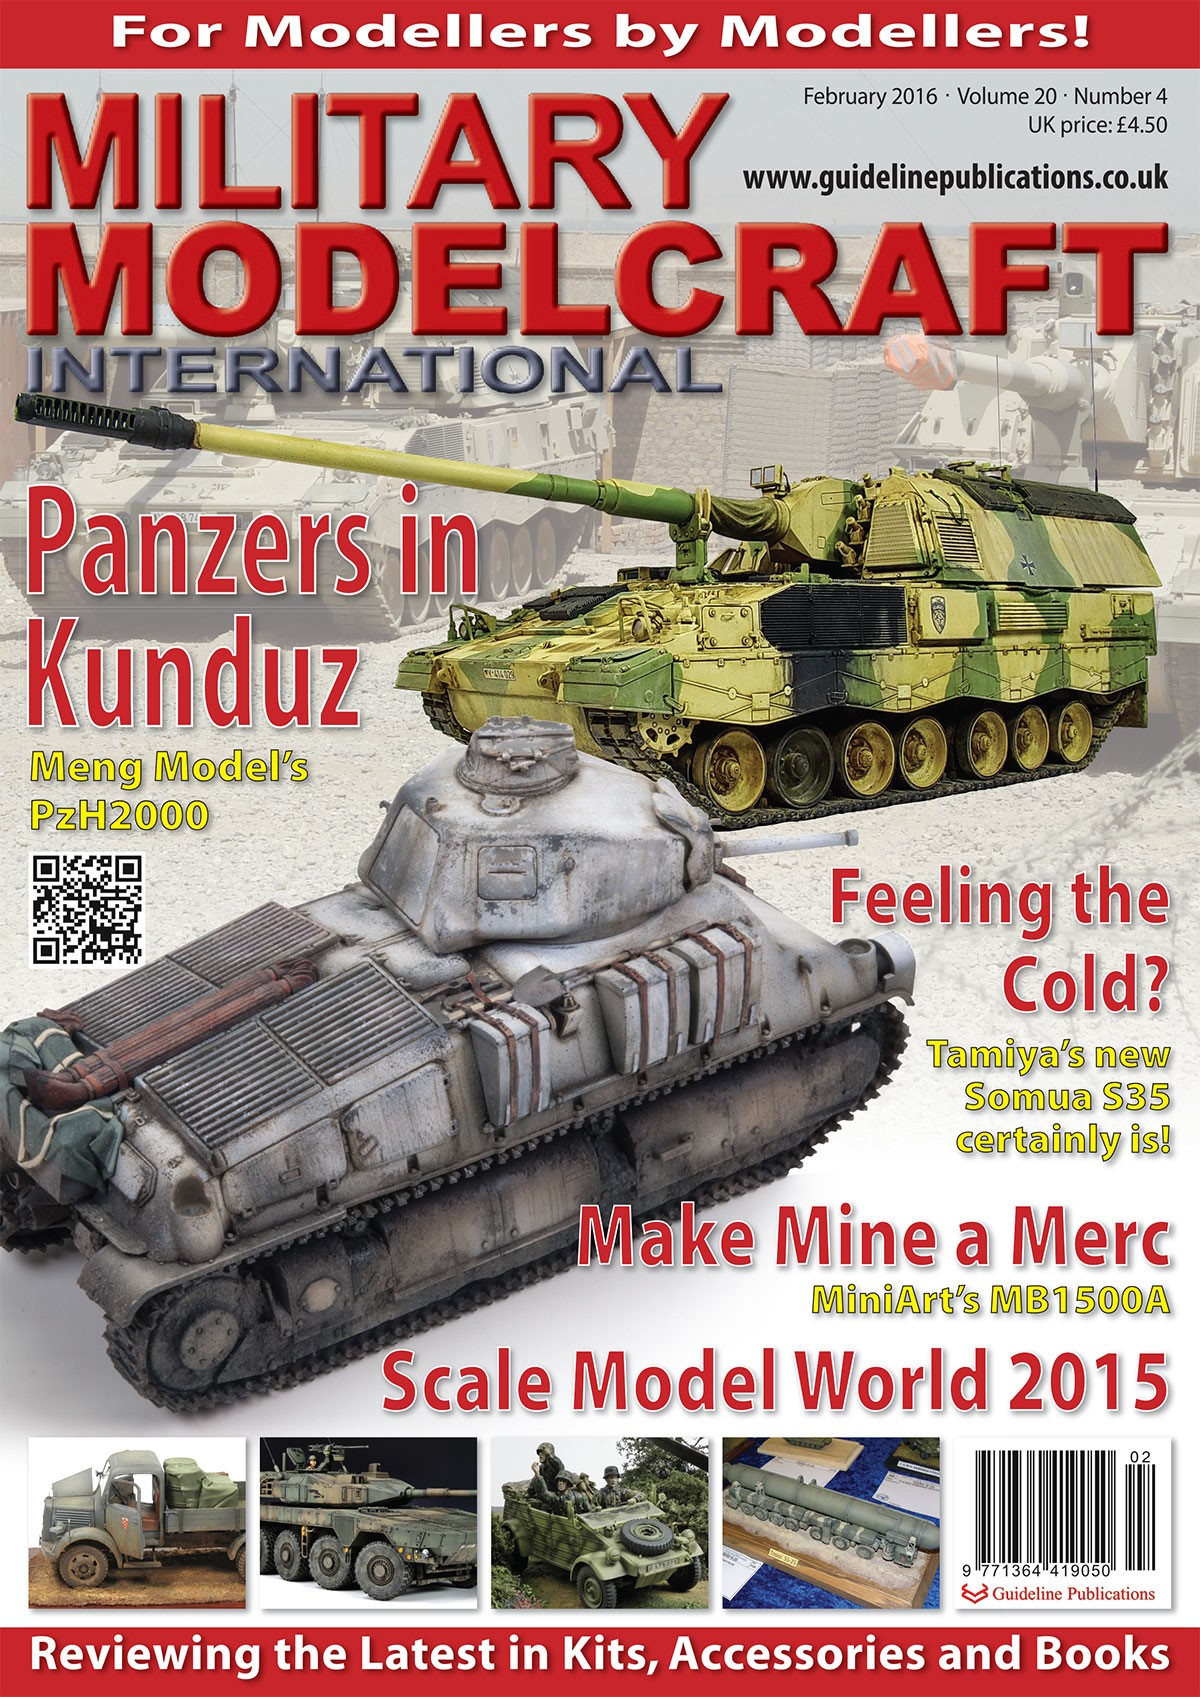 Guideline Publications Military Modelcraft February 2016 vol 20-04